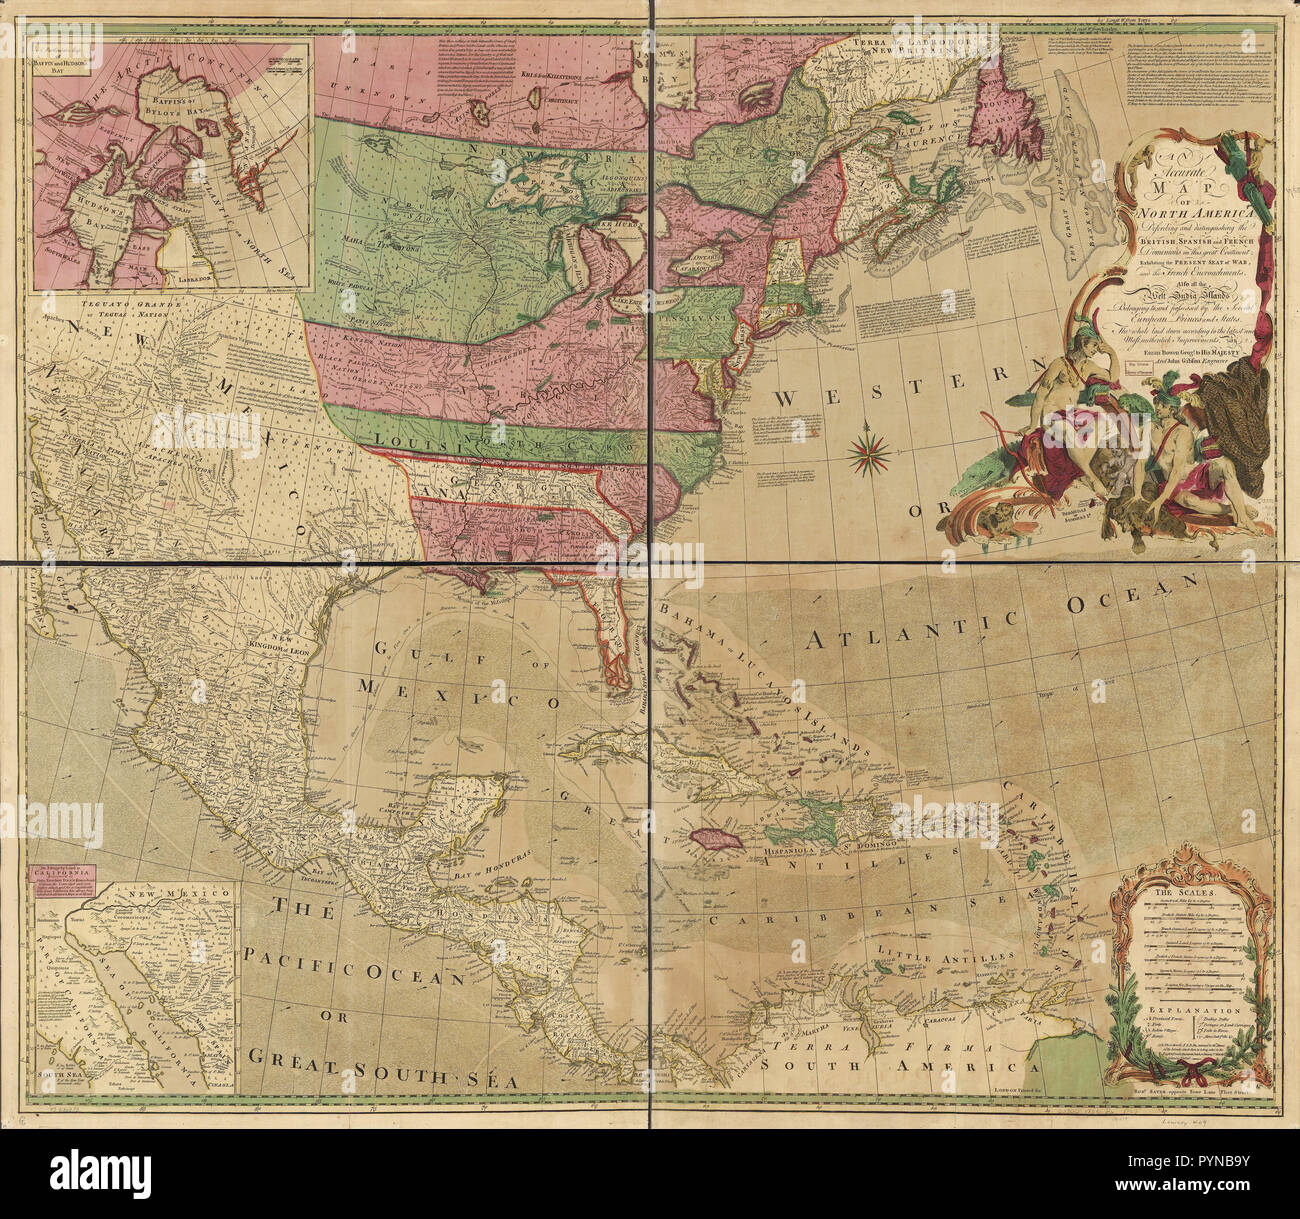 Vintage Maps / Antique Maps - An accurate map of North America ... on russia map, korea map, texas map, china map, europe map, australia map, california map, japan map, maharashtra map, canada map, sri lanka map, arabian sea map, brazil map, karnataka map, andhra pradesh map, france map, indian subcontinent map, time zone map, africa map,